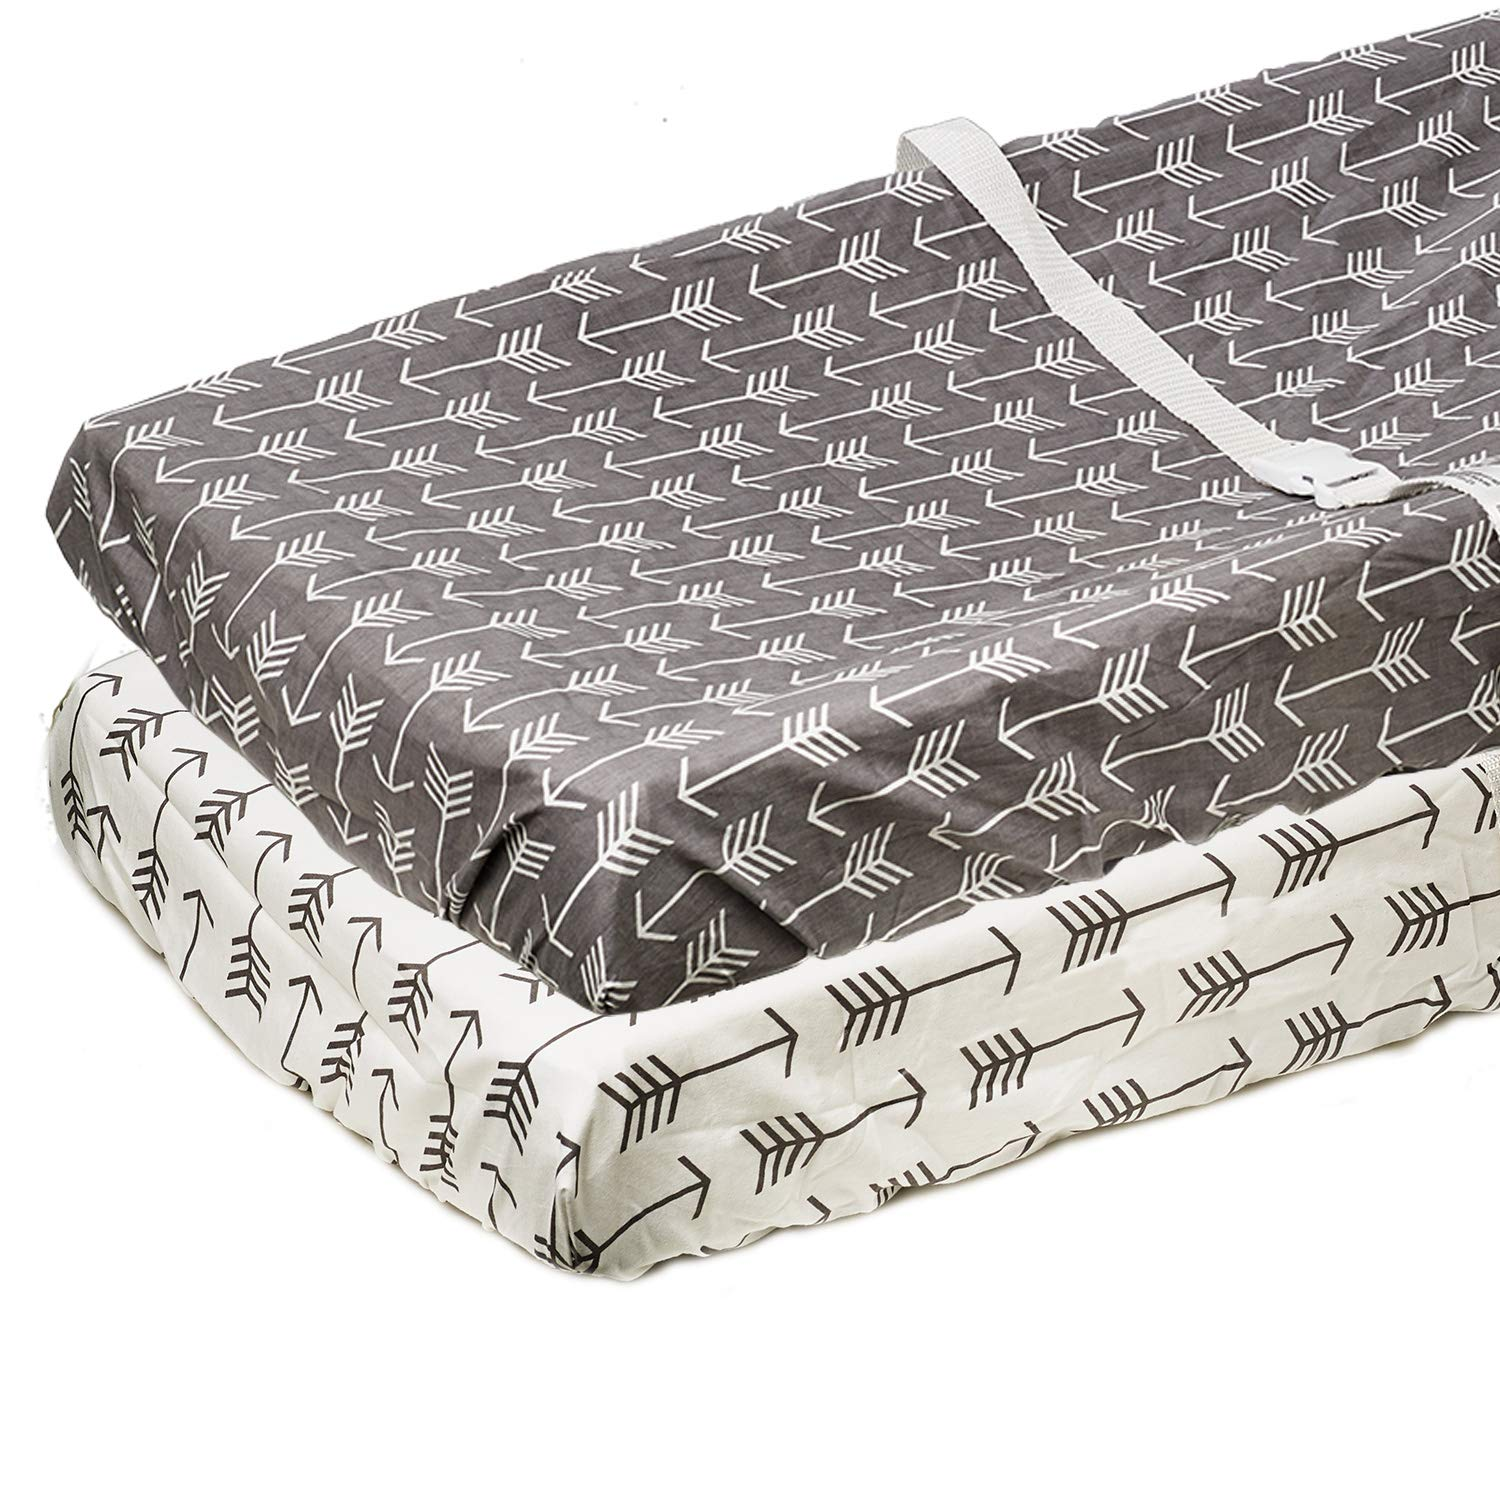 Org Store Premium Arrows Design Changing Pad Cover Set   100% Cotton Changing Table Pad Cover 2-Pack by Org Store